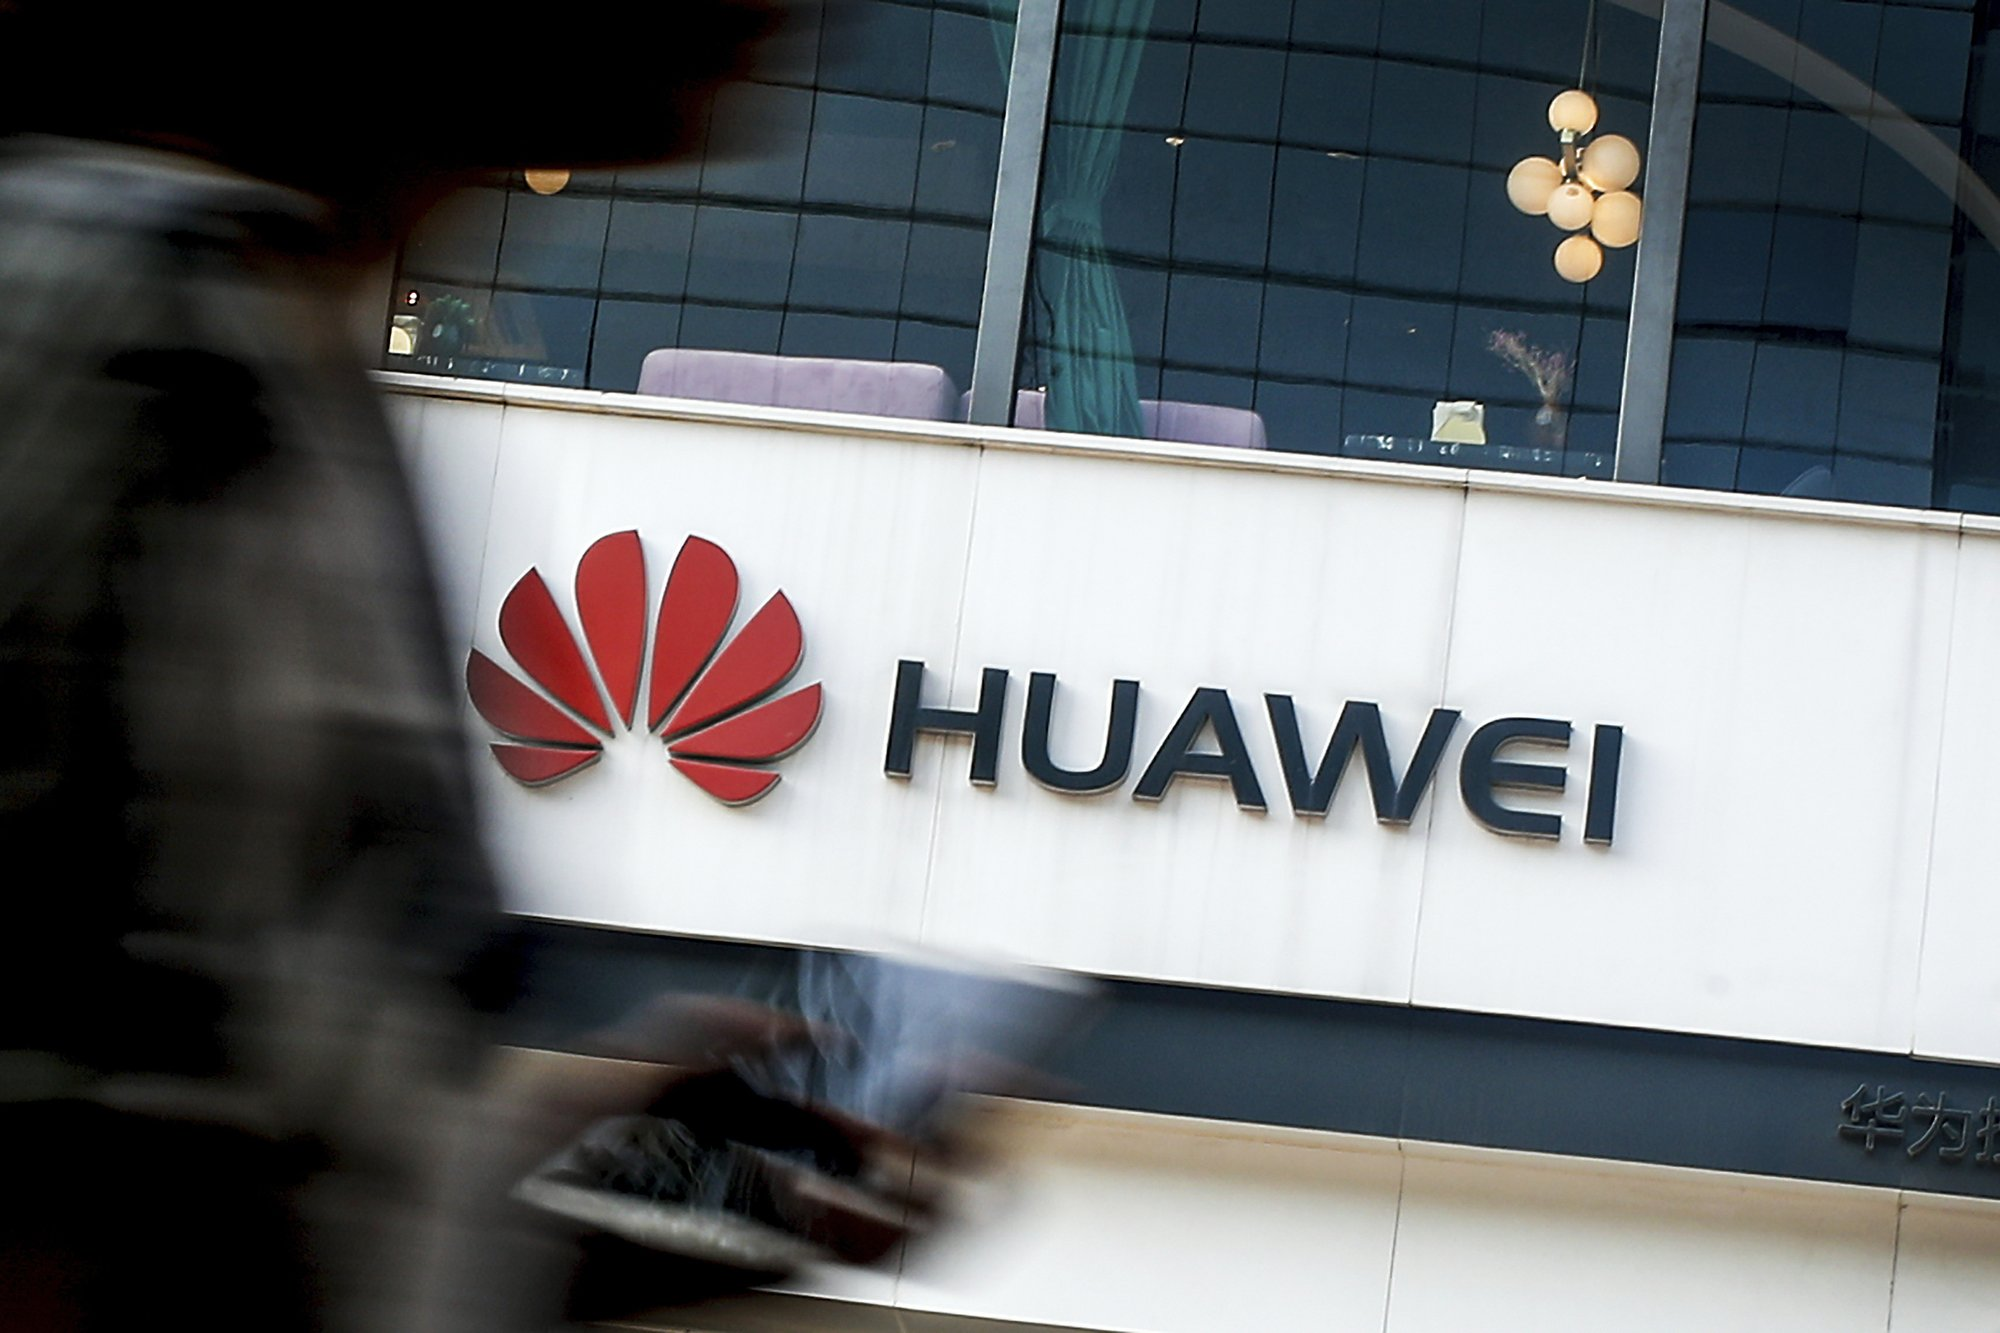 Estonia plans to restrict govt use of Huawei 5G technology